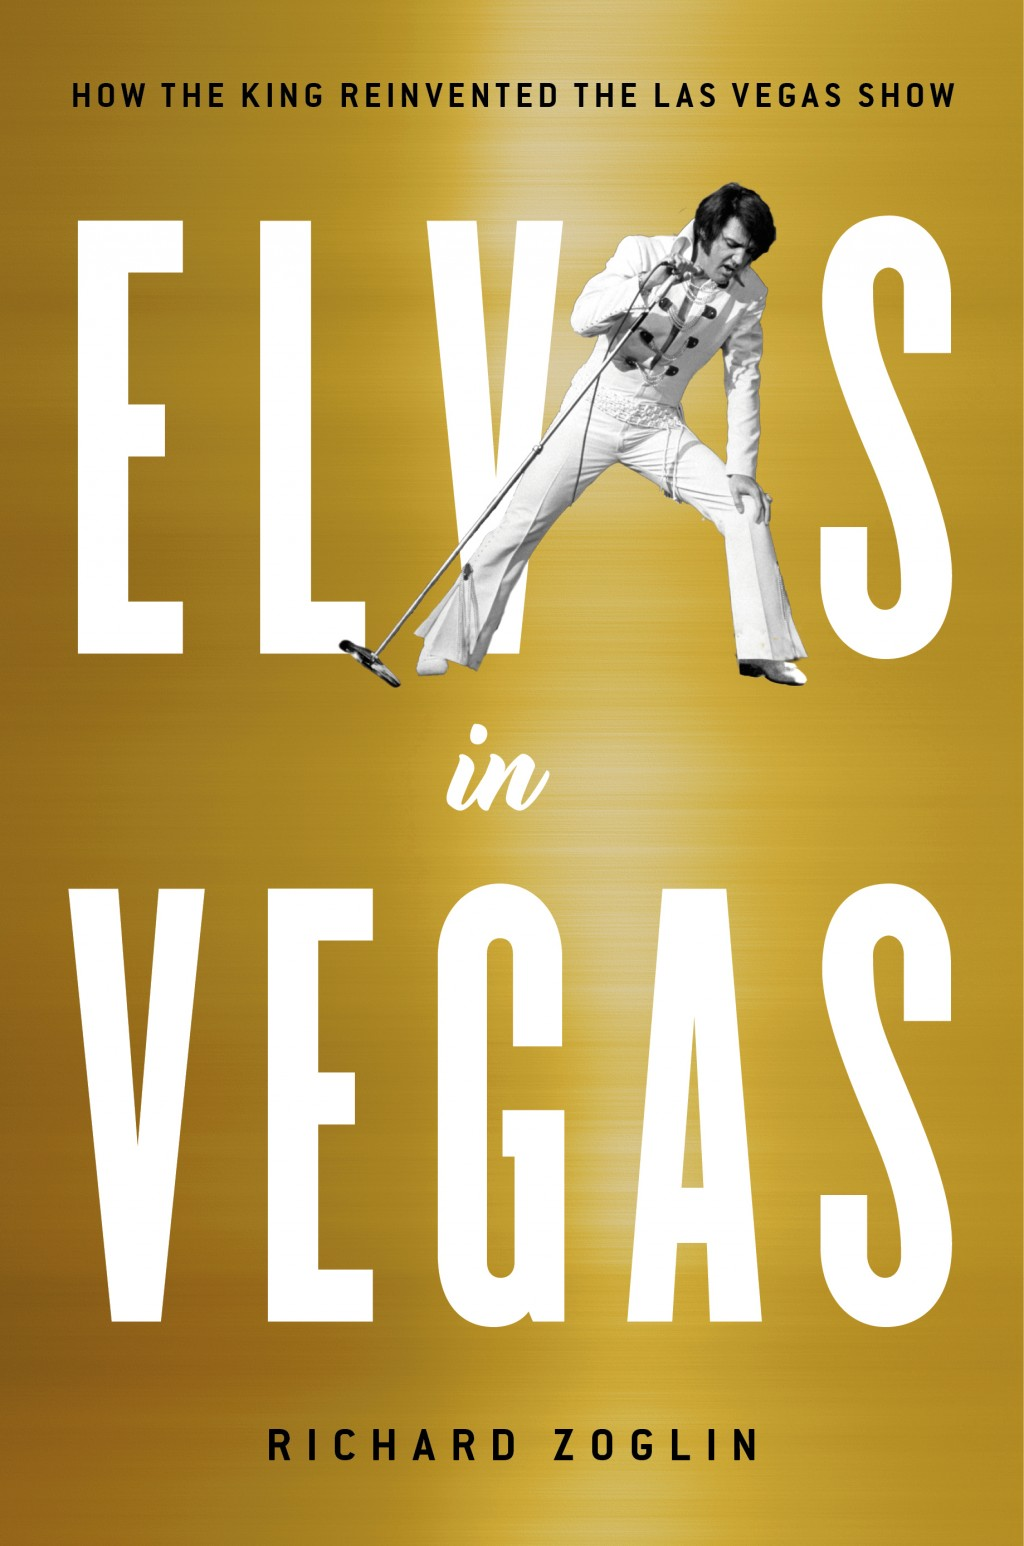 """This cover image released by Simon & Schuster shows """"Elvis in Vegas: How the King Reinvented the Las Vegas Show,"""" by Richard Zoglin. (Simon & Schuster..."""